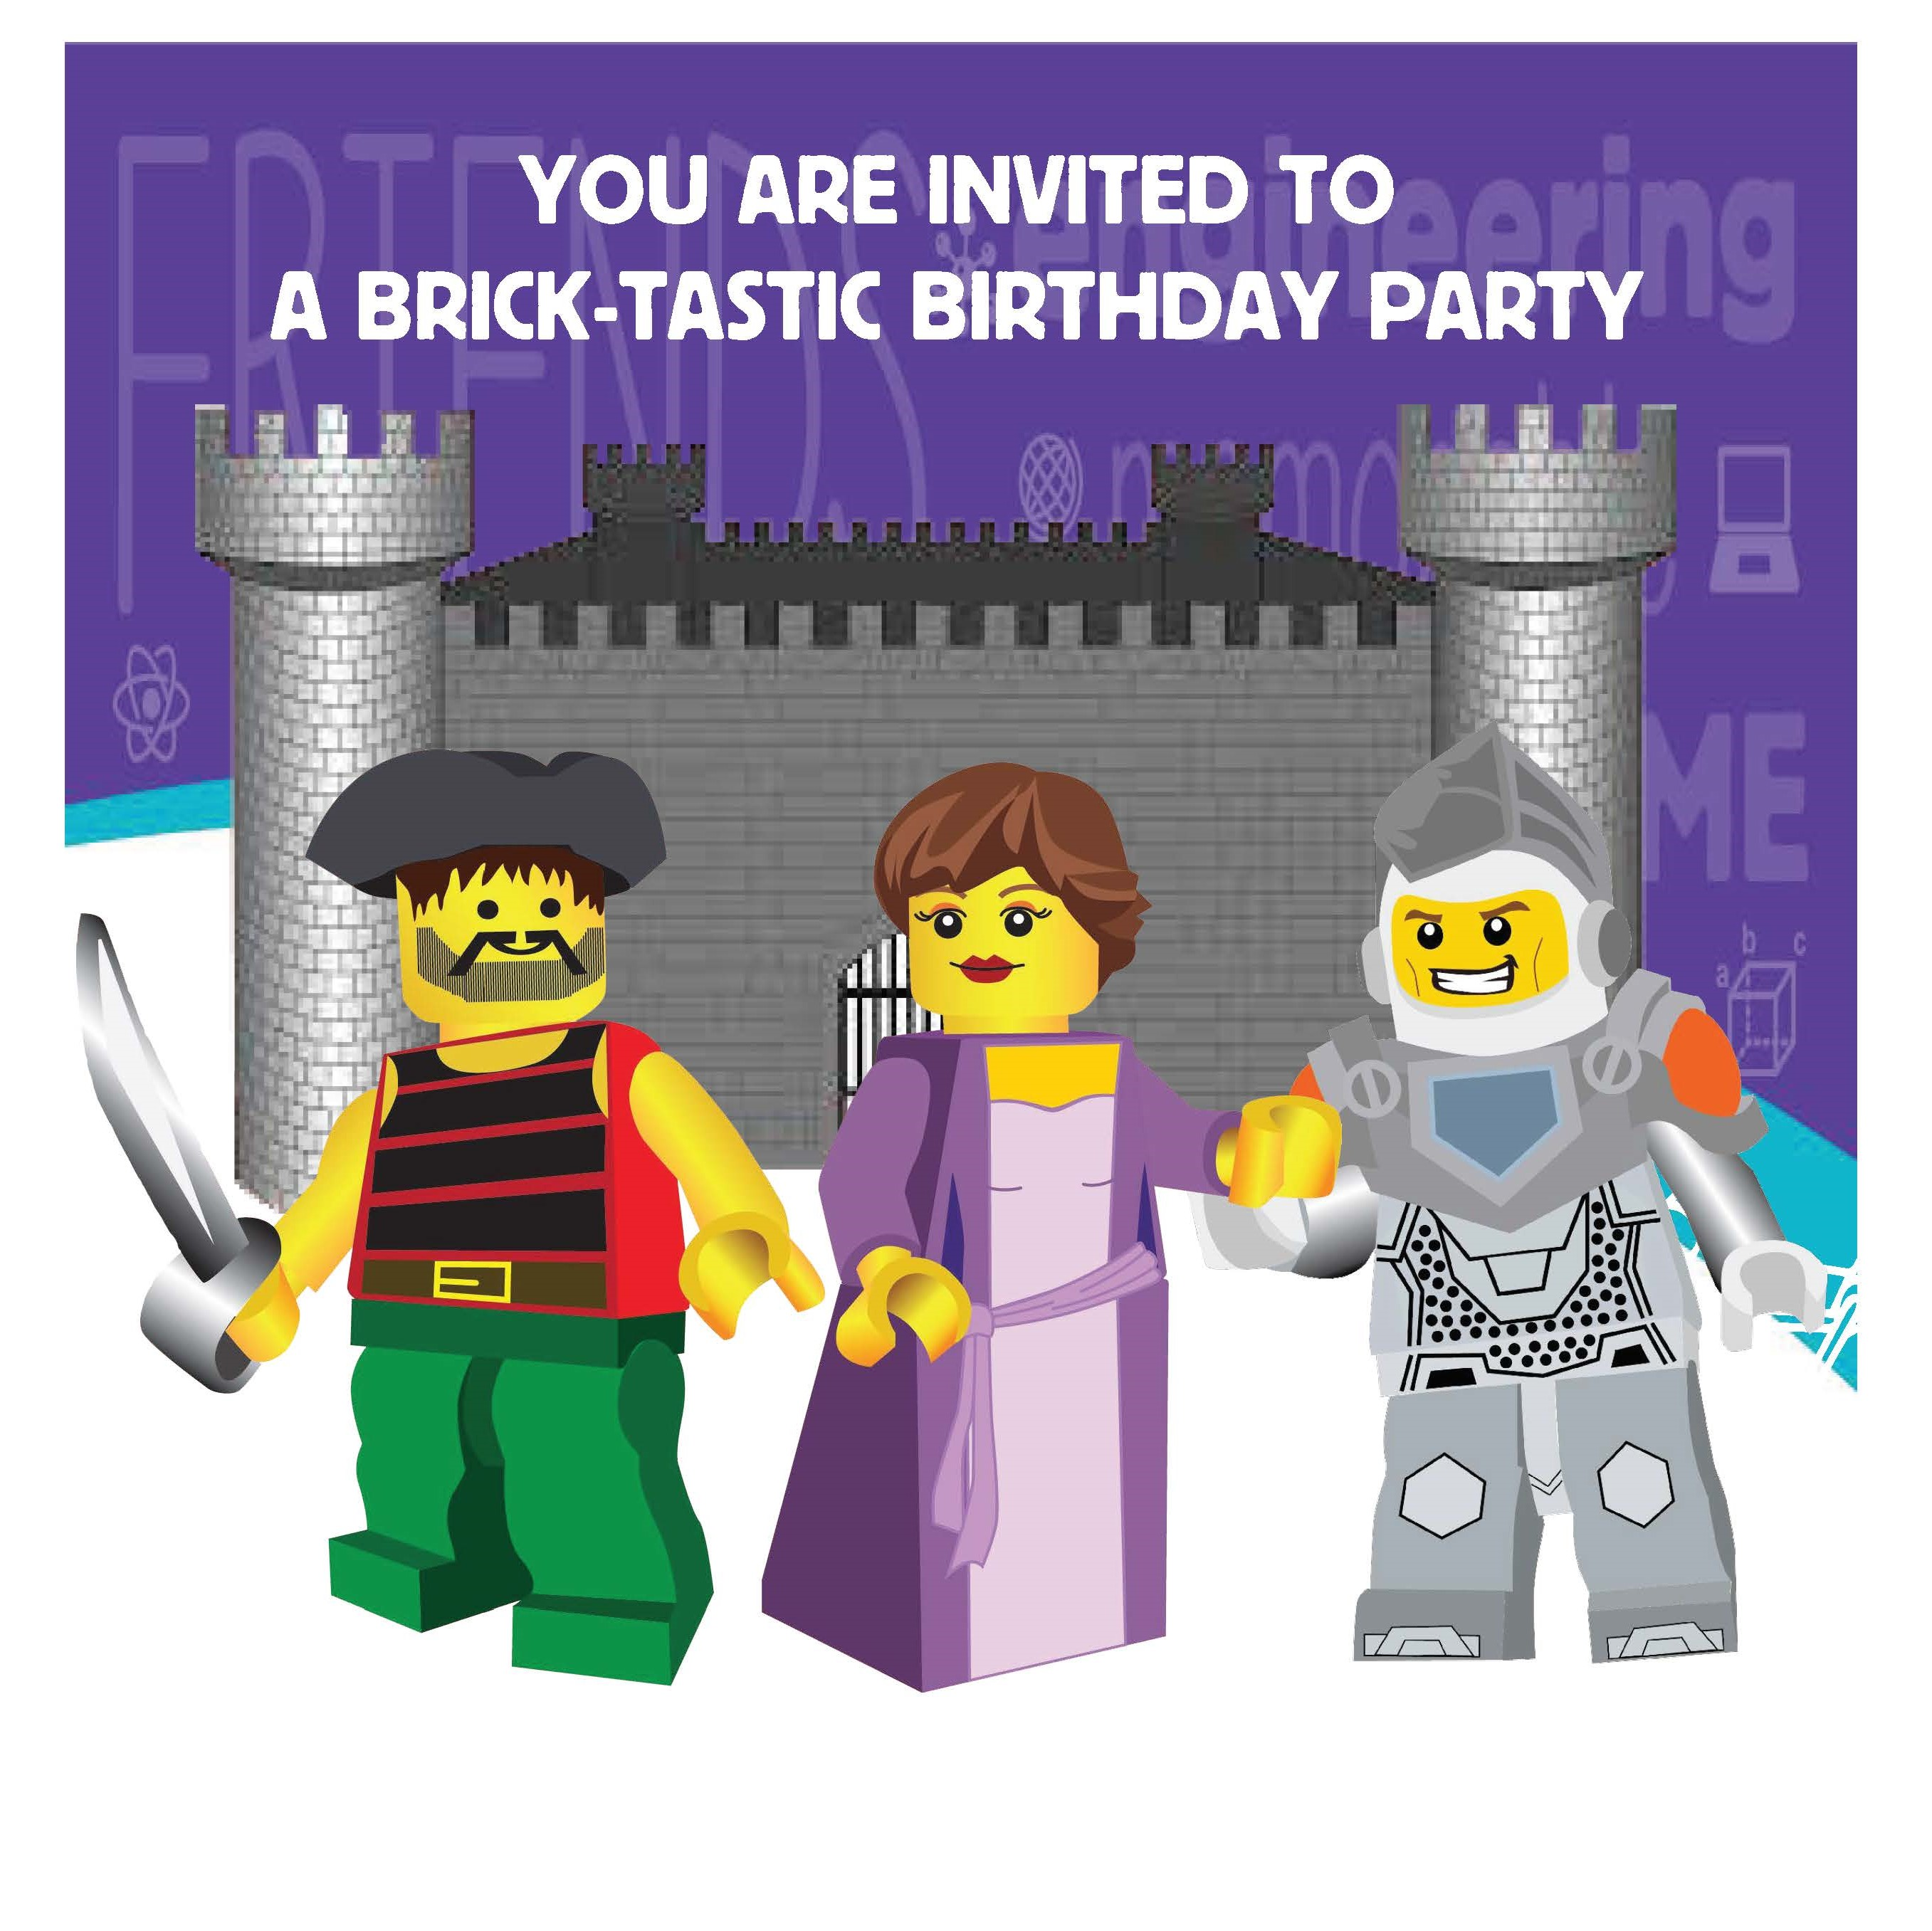 BRICKS 4 KIDZ Party Invitation 2